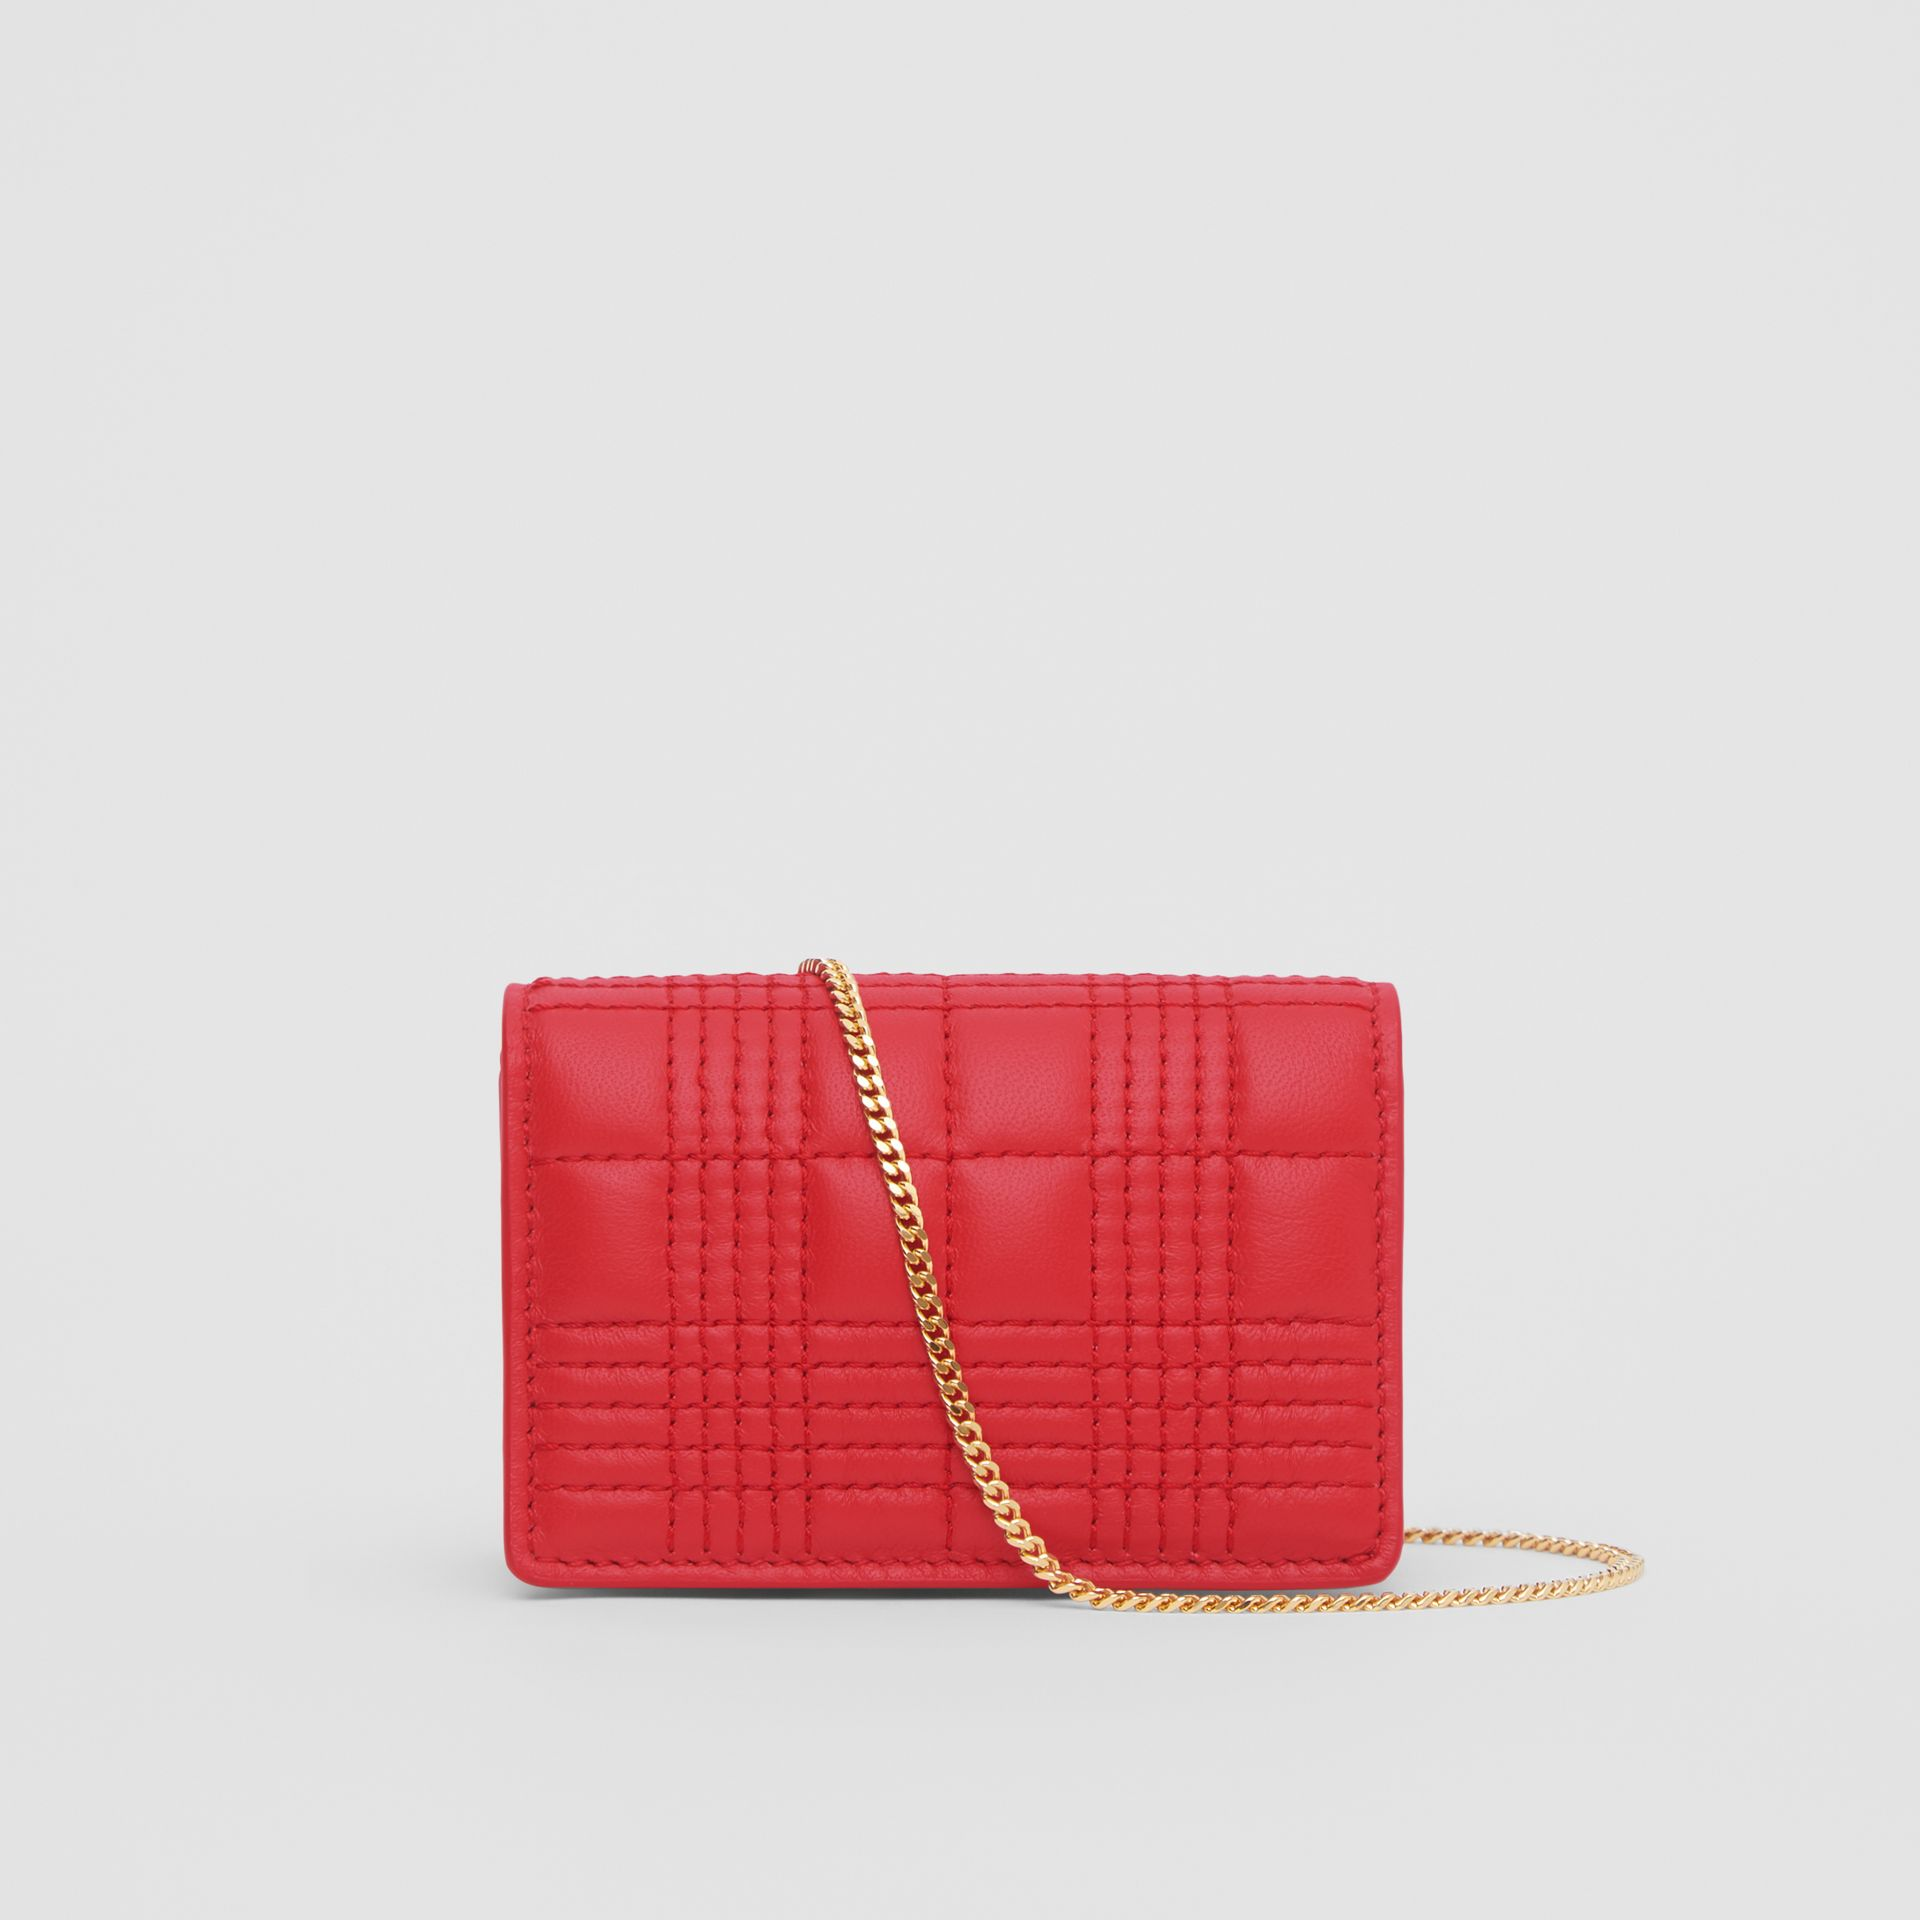 Porte-cartes en cuir d'agneau matelassé avec sangle amovible (Rouge Vif) | Burberry Canada - photo de la galerie 9